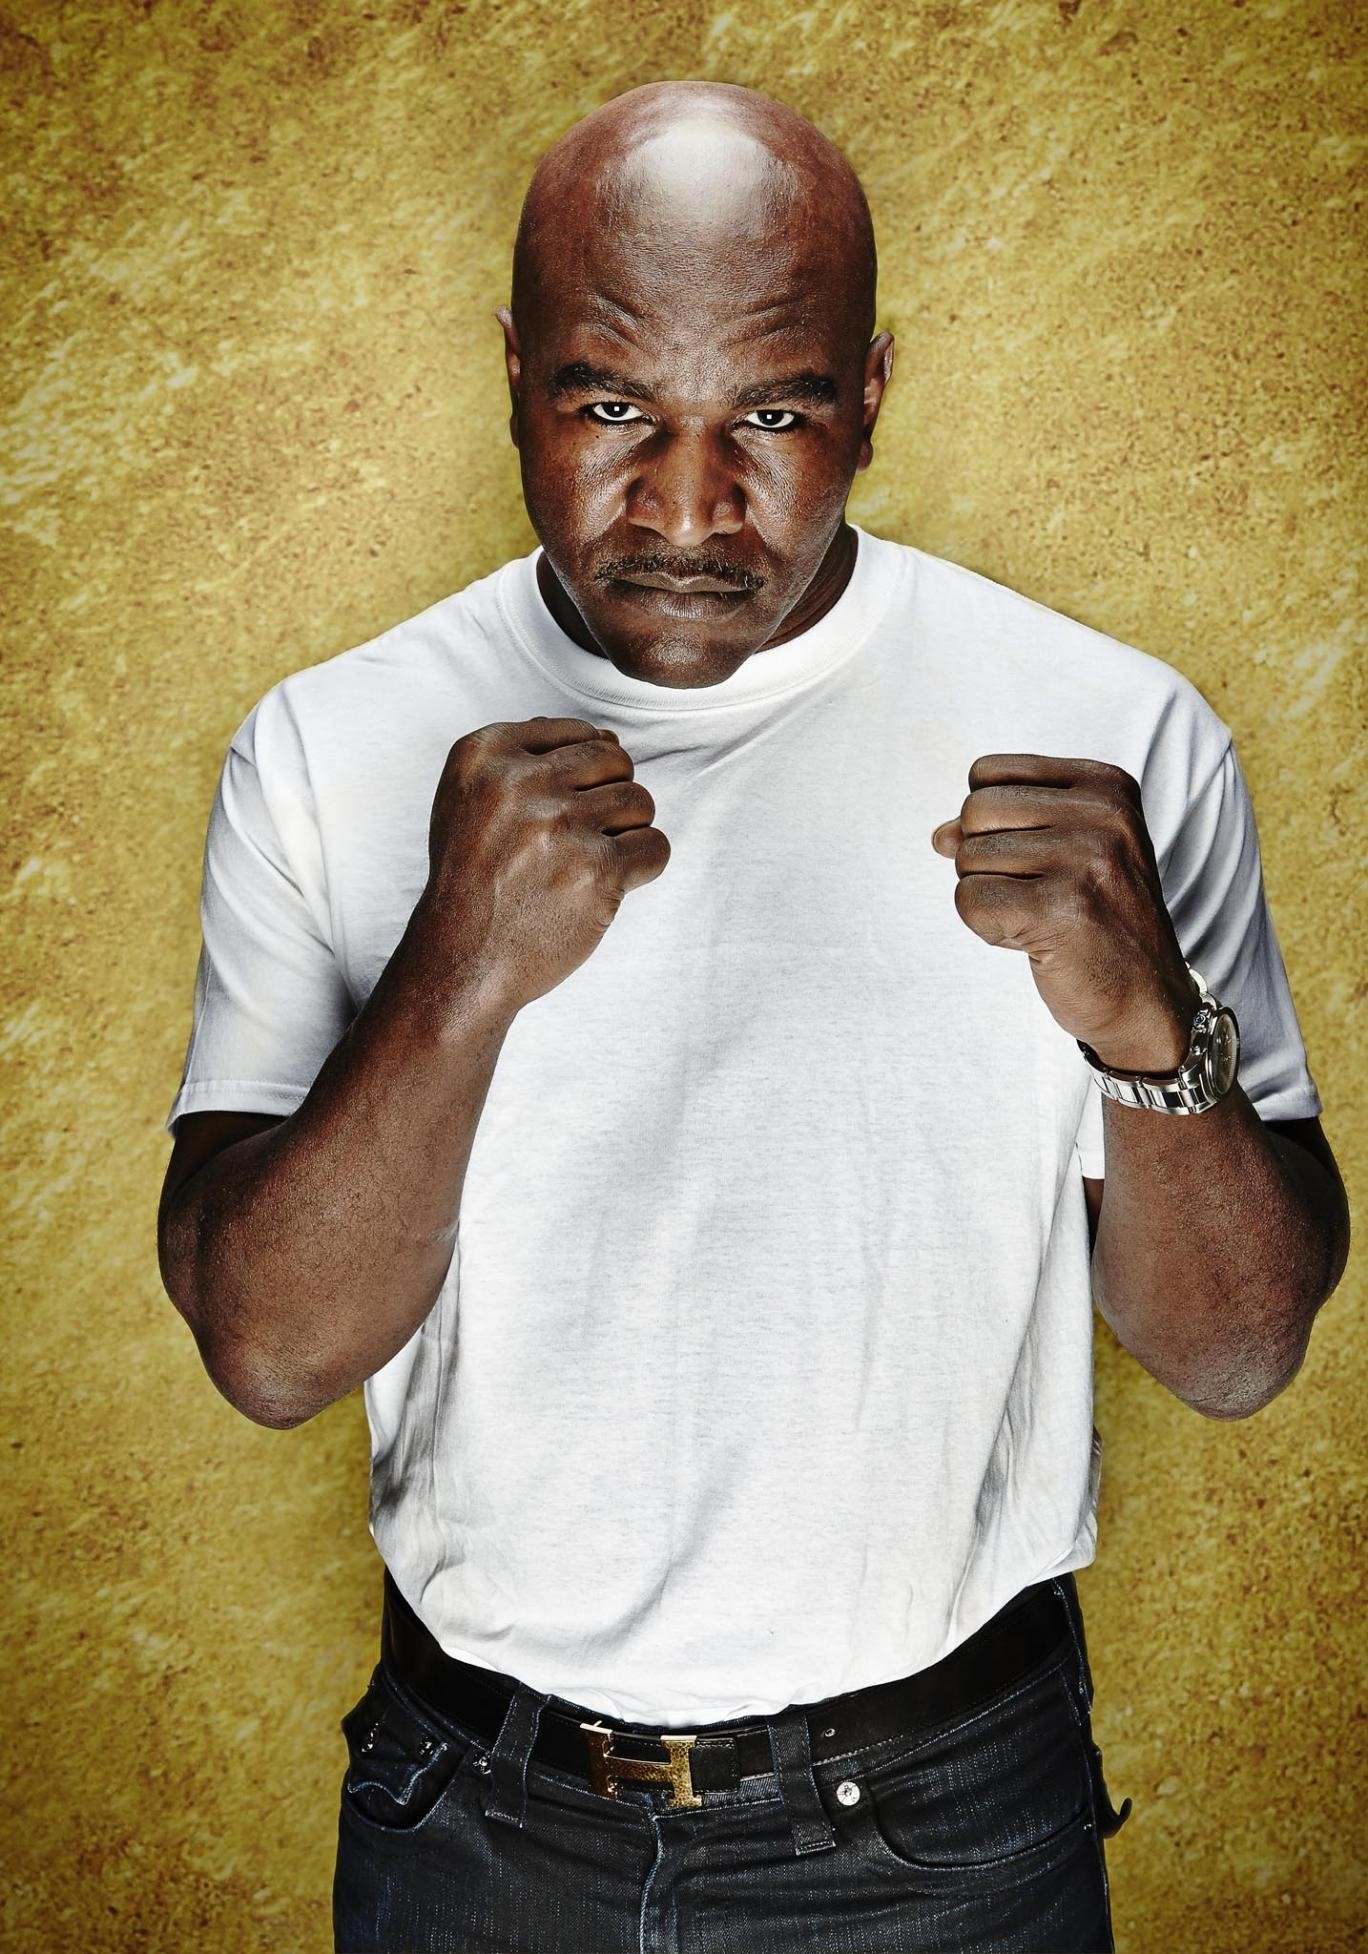 Picture of Evander Holyfield